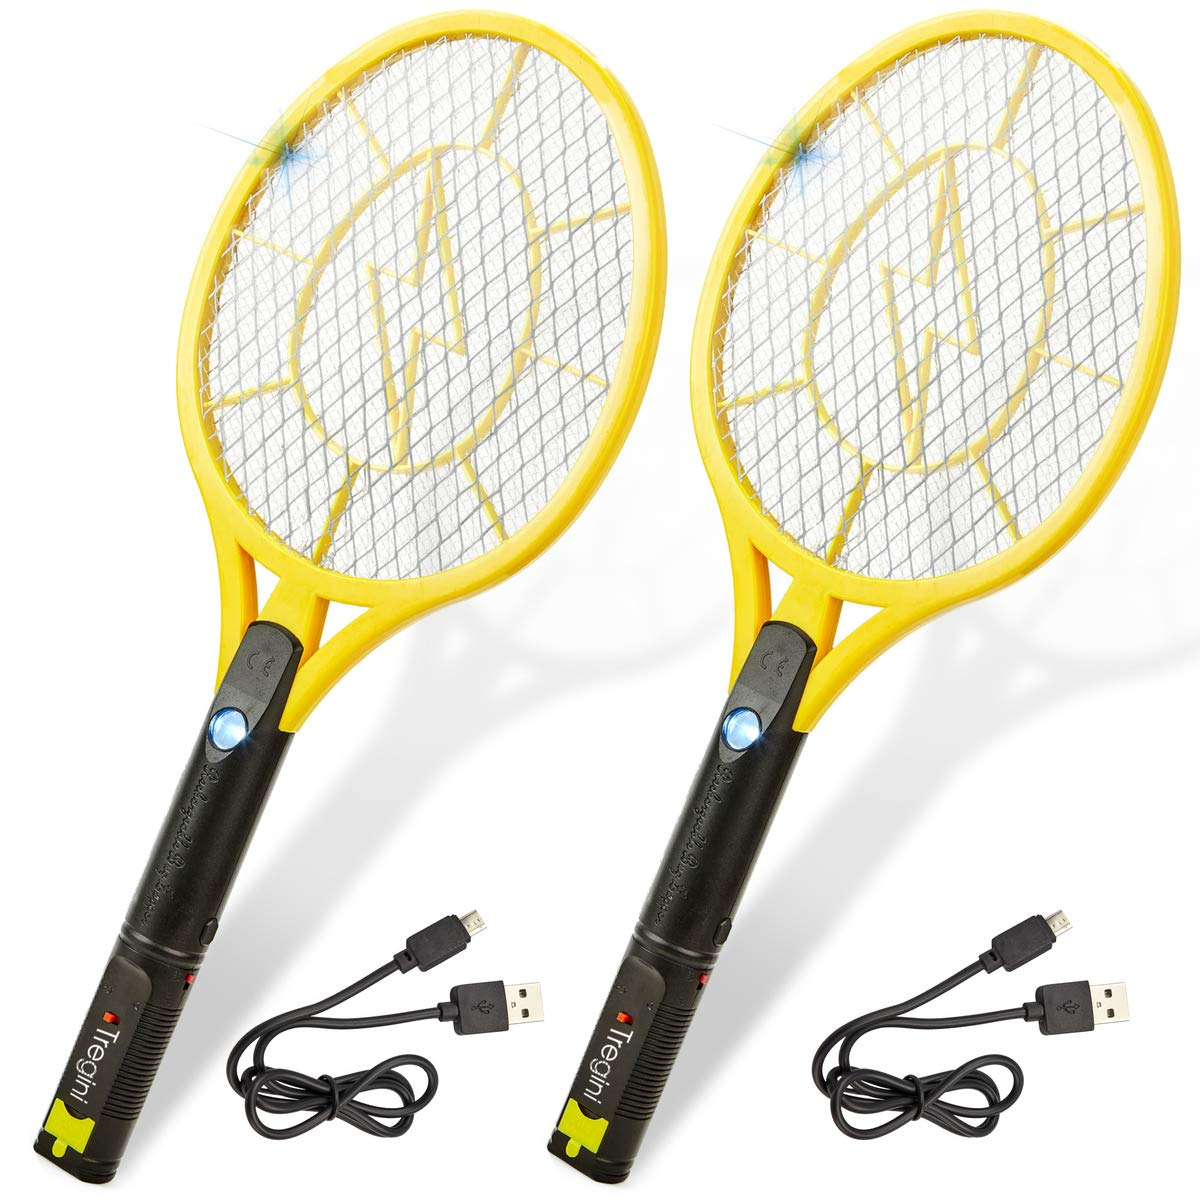 Tregini Large Electric Fly Swatter 2 Pack - Rechargeable Bug Zapper Tennis Racket with Safe to Touch Mesh Net and Built-in Flashlight - Kills Insects, Gnats, Mosquitoes and Bugs by Tregini